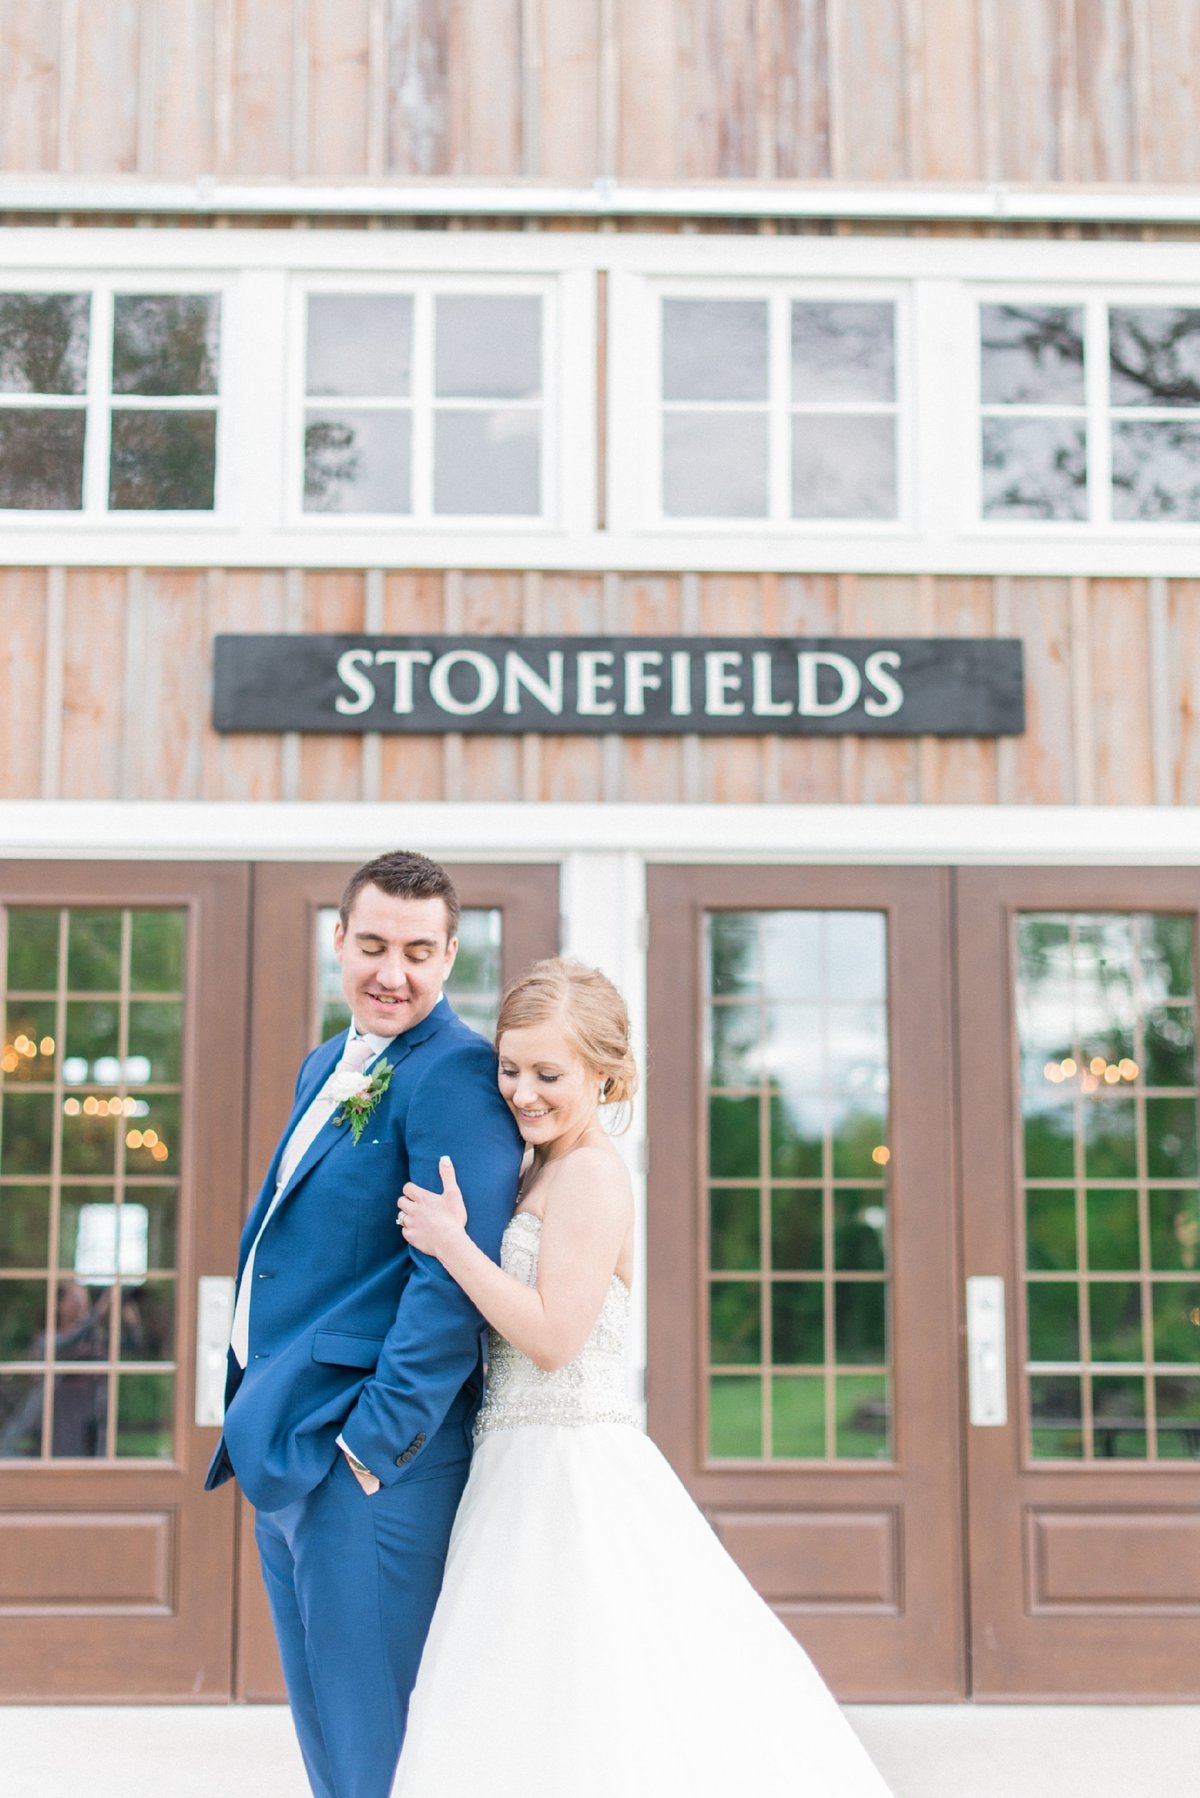 stonefields wedding photographer ottawa_0046